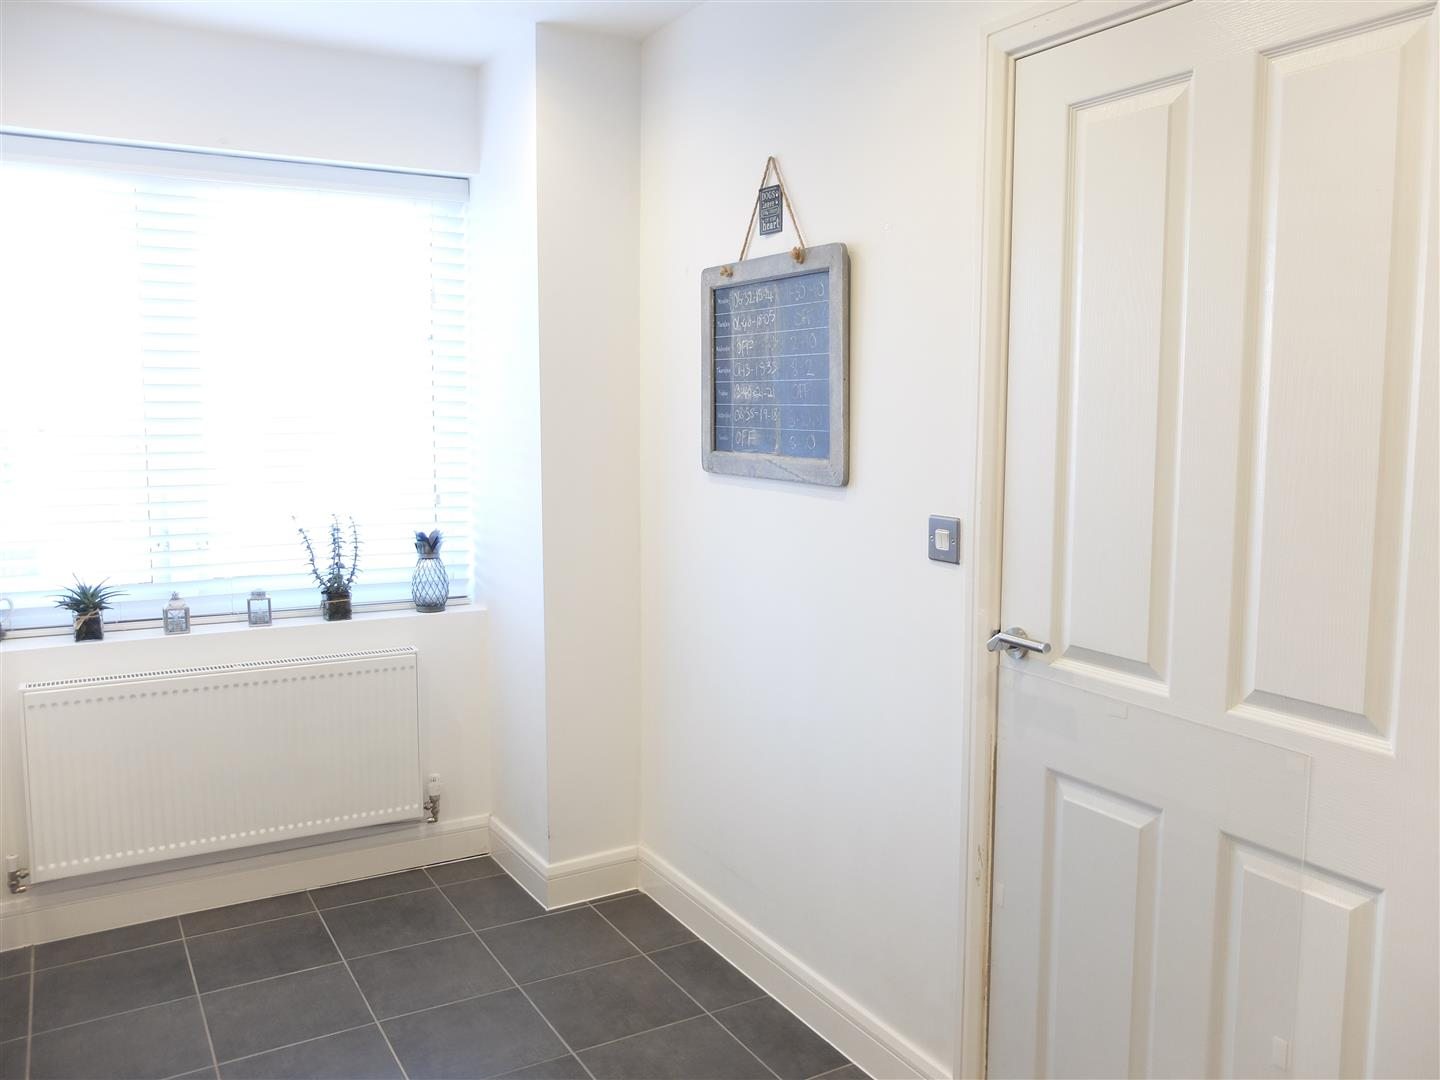 2 Bedrooms House - Semi-Detached On Sale 58 Thomlinson Avenue Carlisle